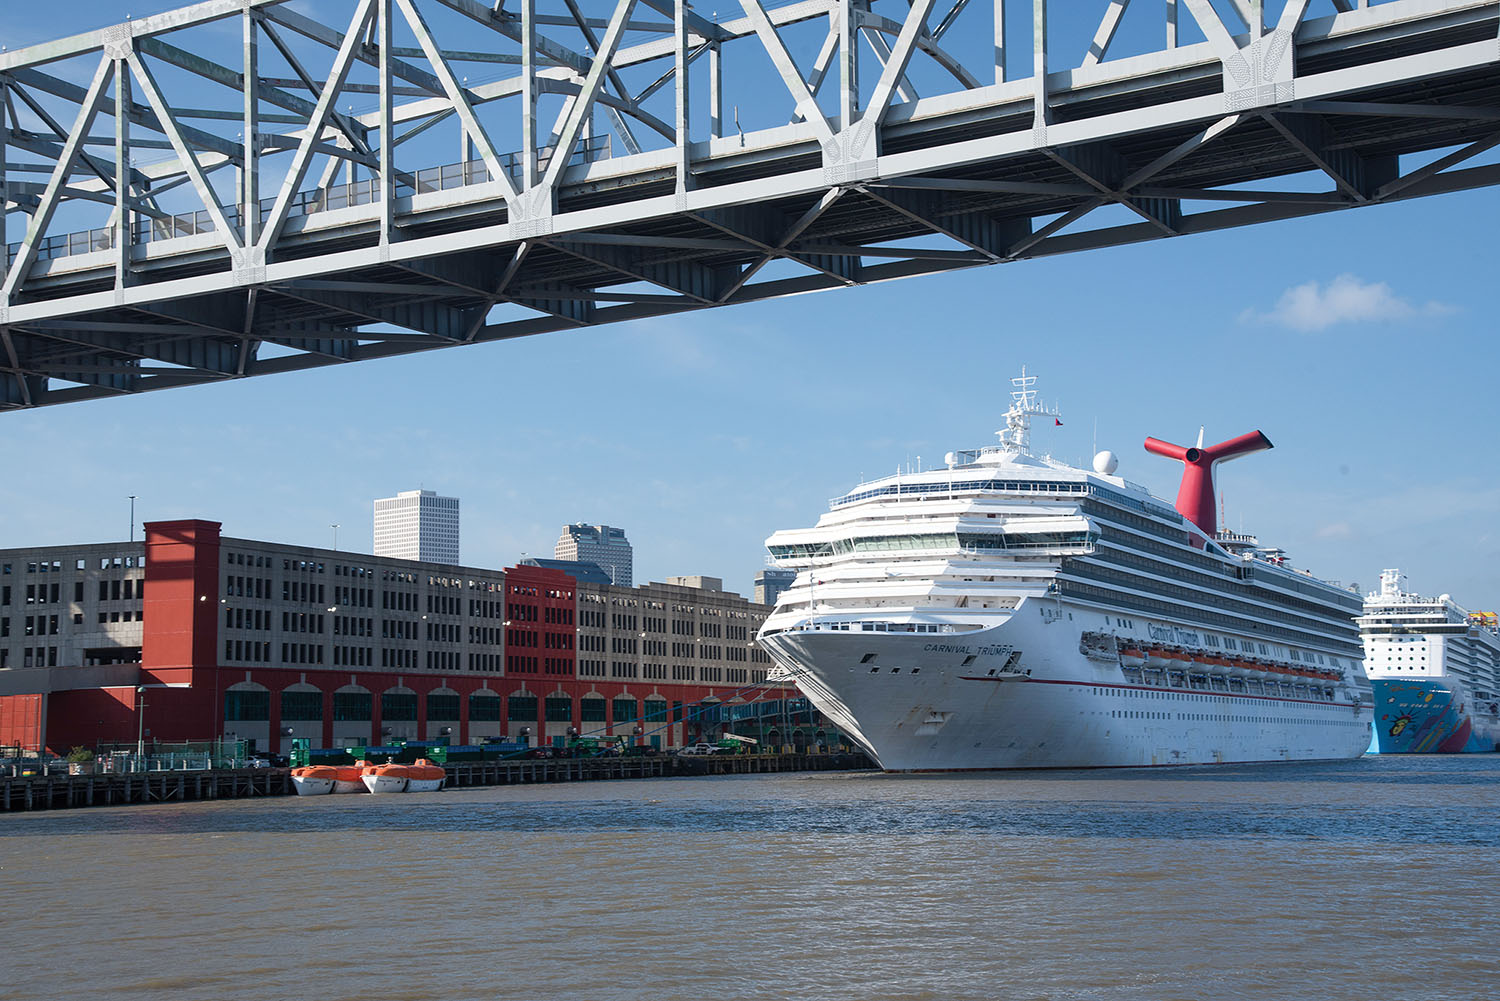 With Oceangoing Cruises Still Absent At U.S. Ports, River Cruising Gets Underway